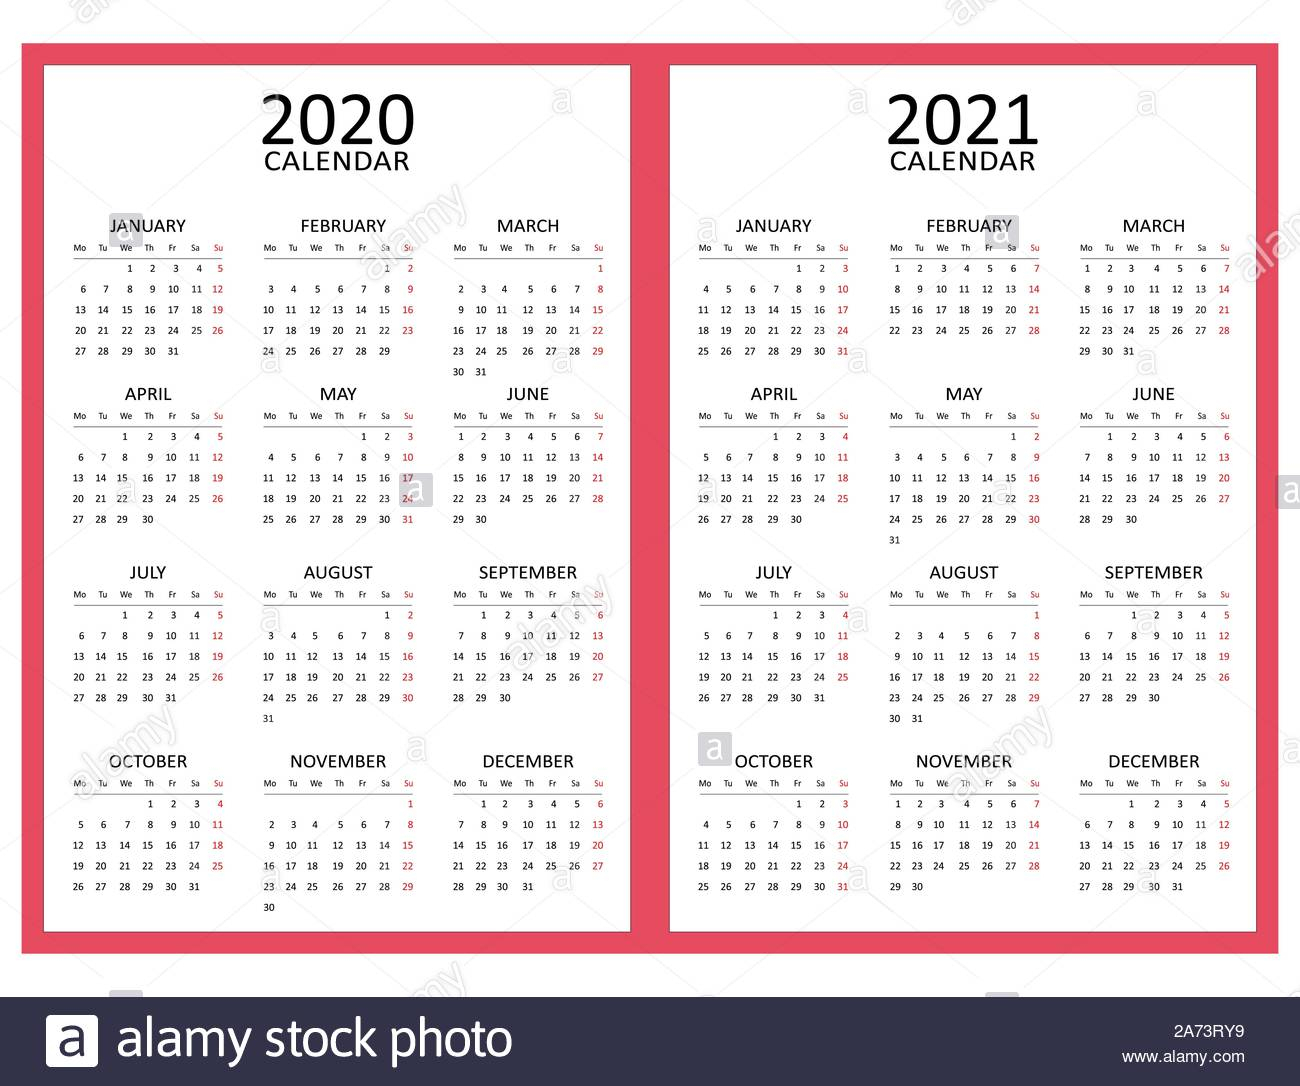 Simple Calendar Layout For Two Years 2020 And 2021. Starts inside Saturday Calendar 2021